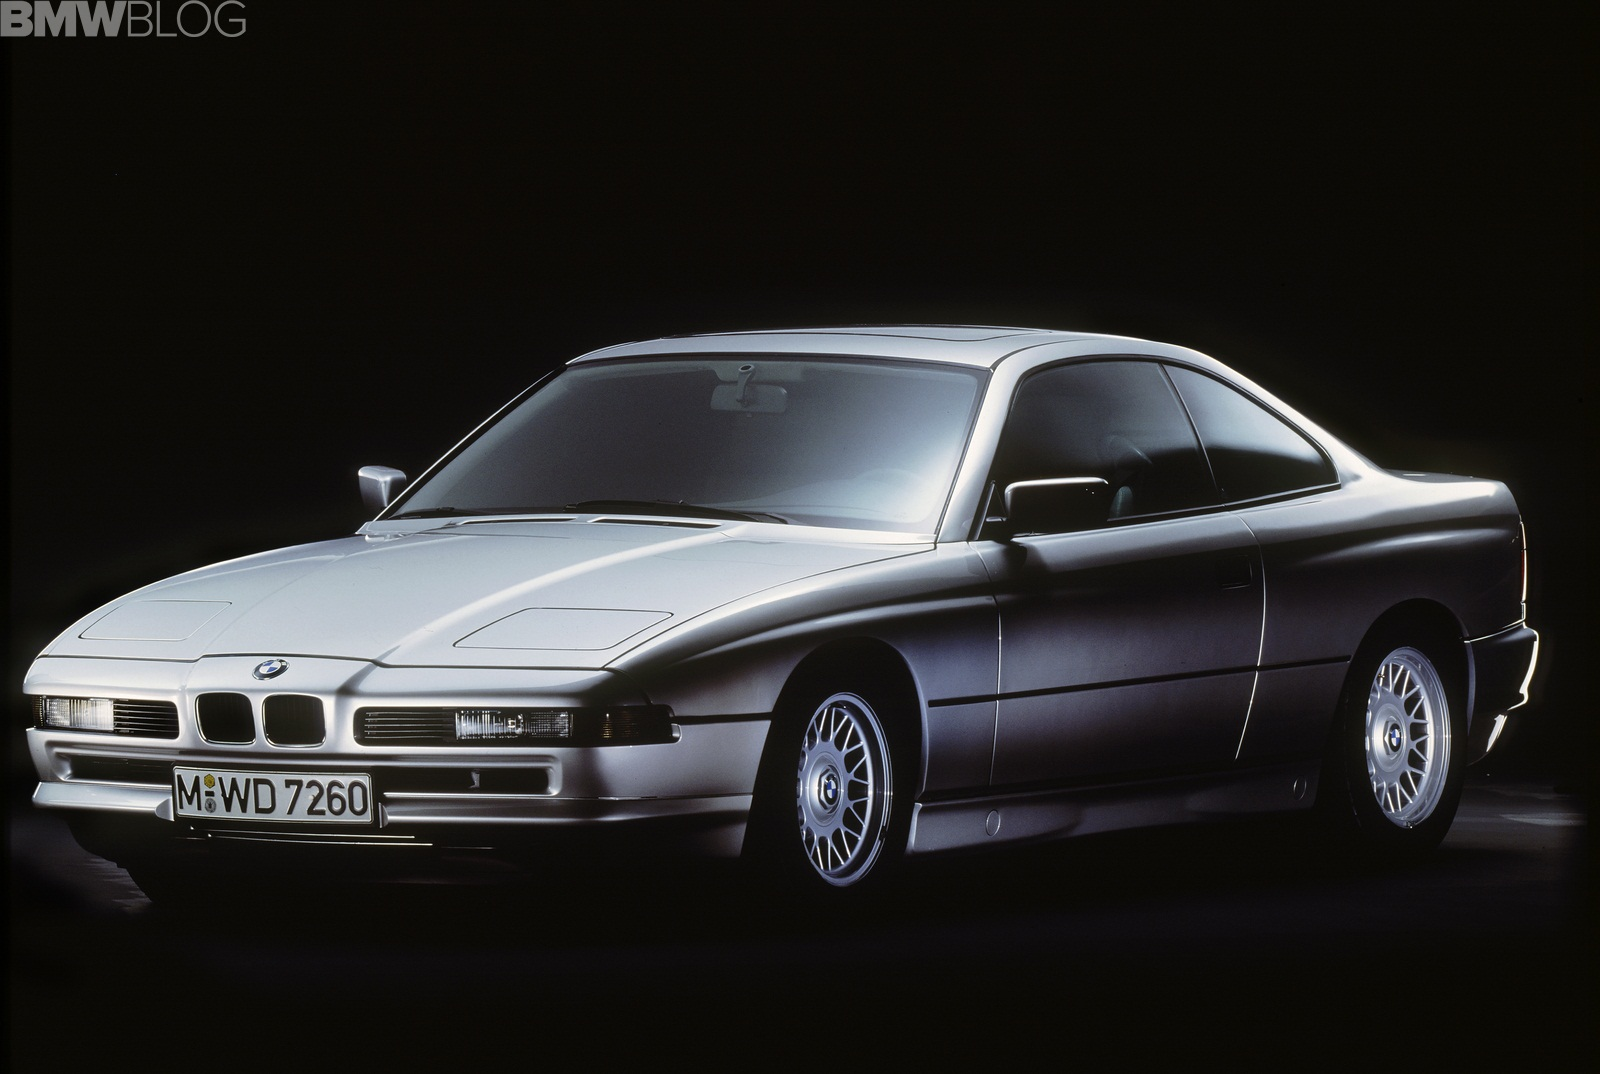 bmw 8 series images 06